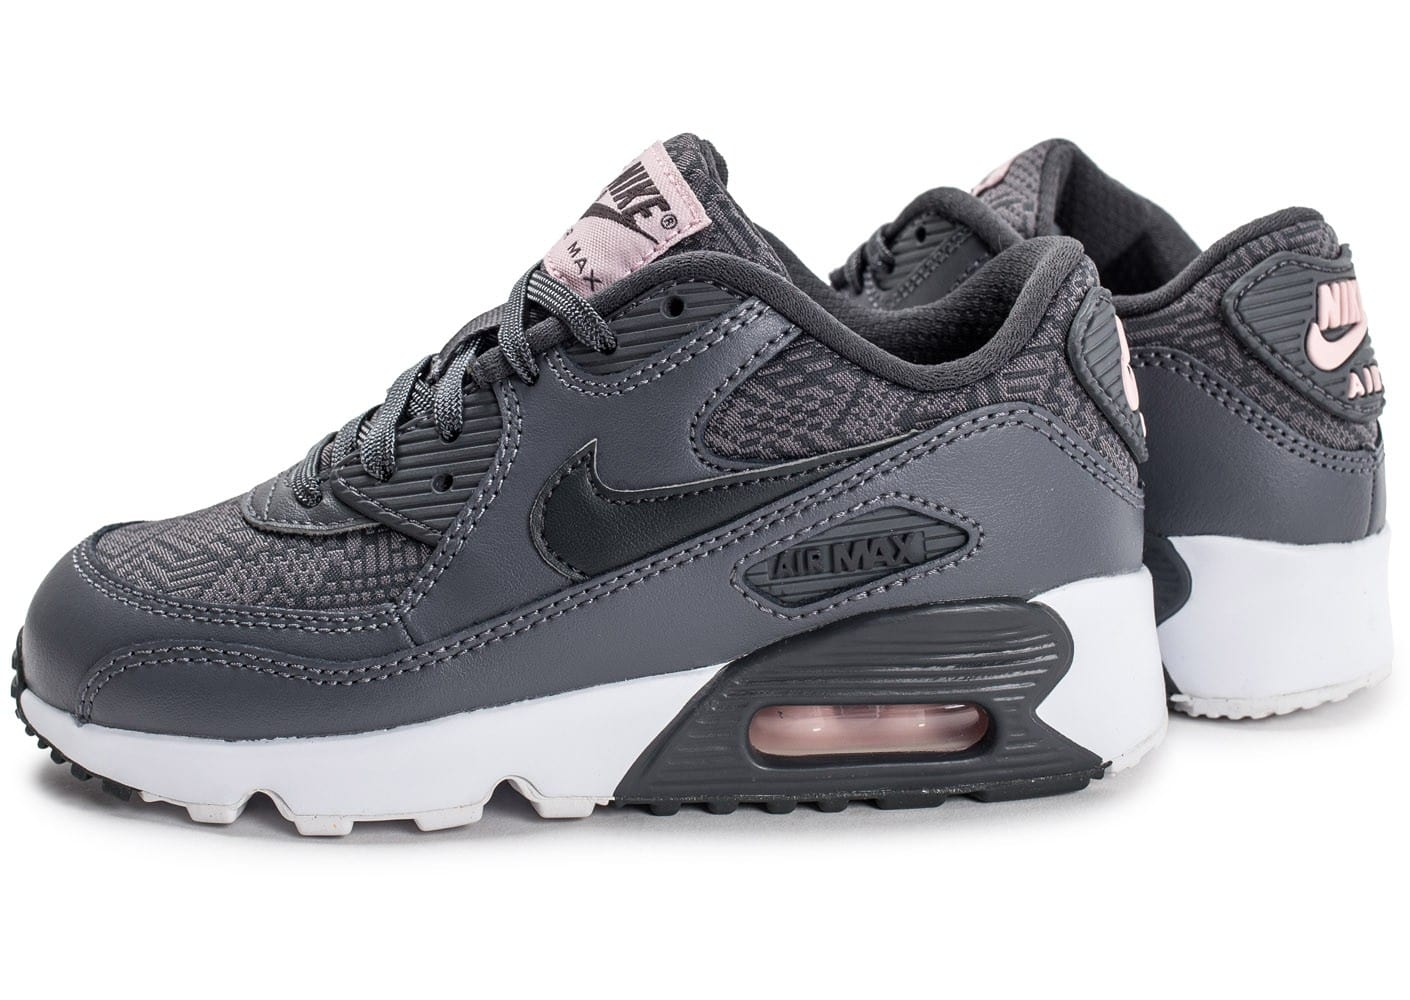 air max enfants 27, Chaussures Nike Air Max 90 SE Mesh Enfant anthracite